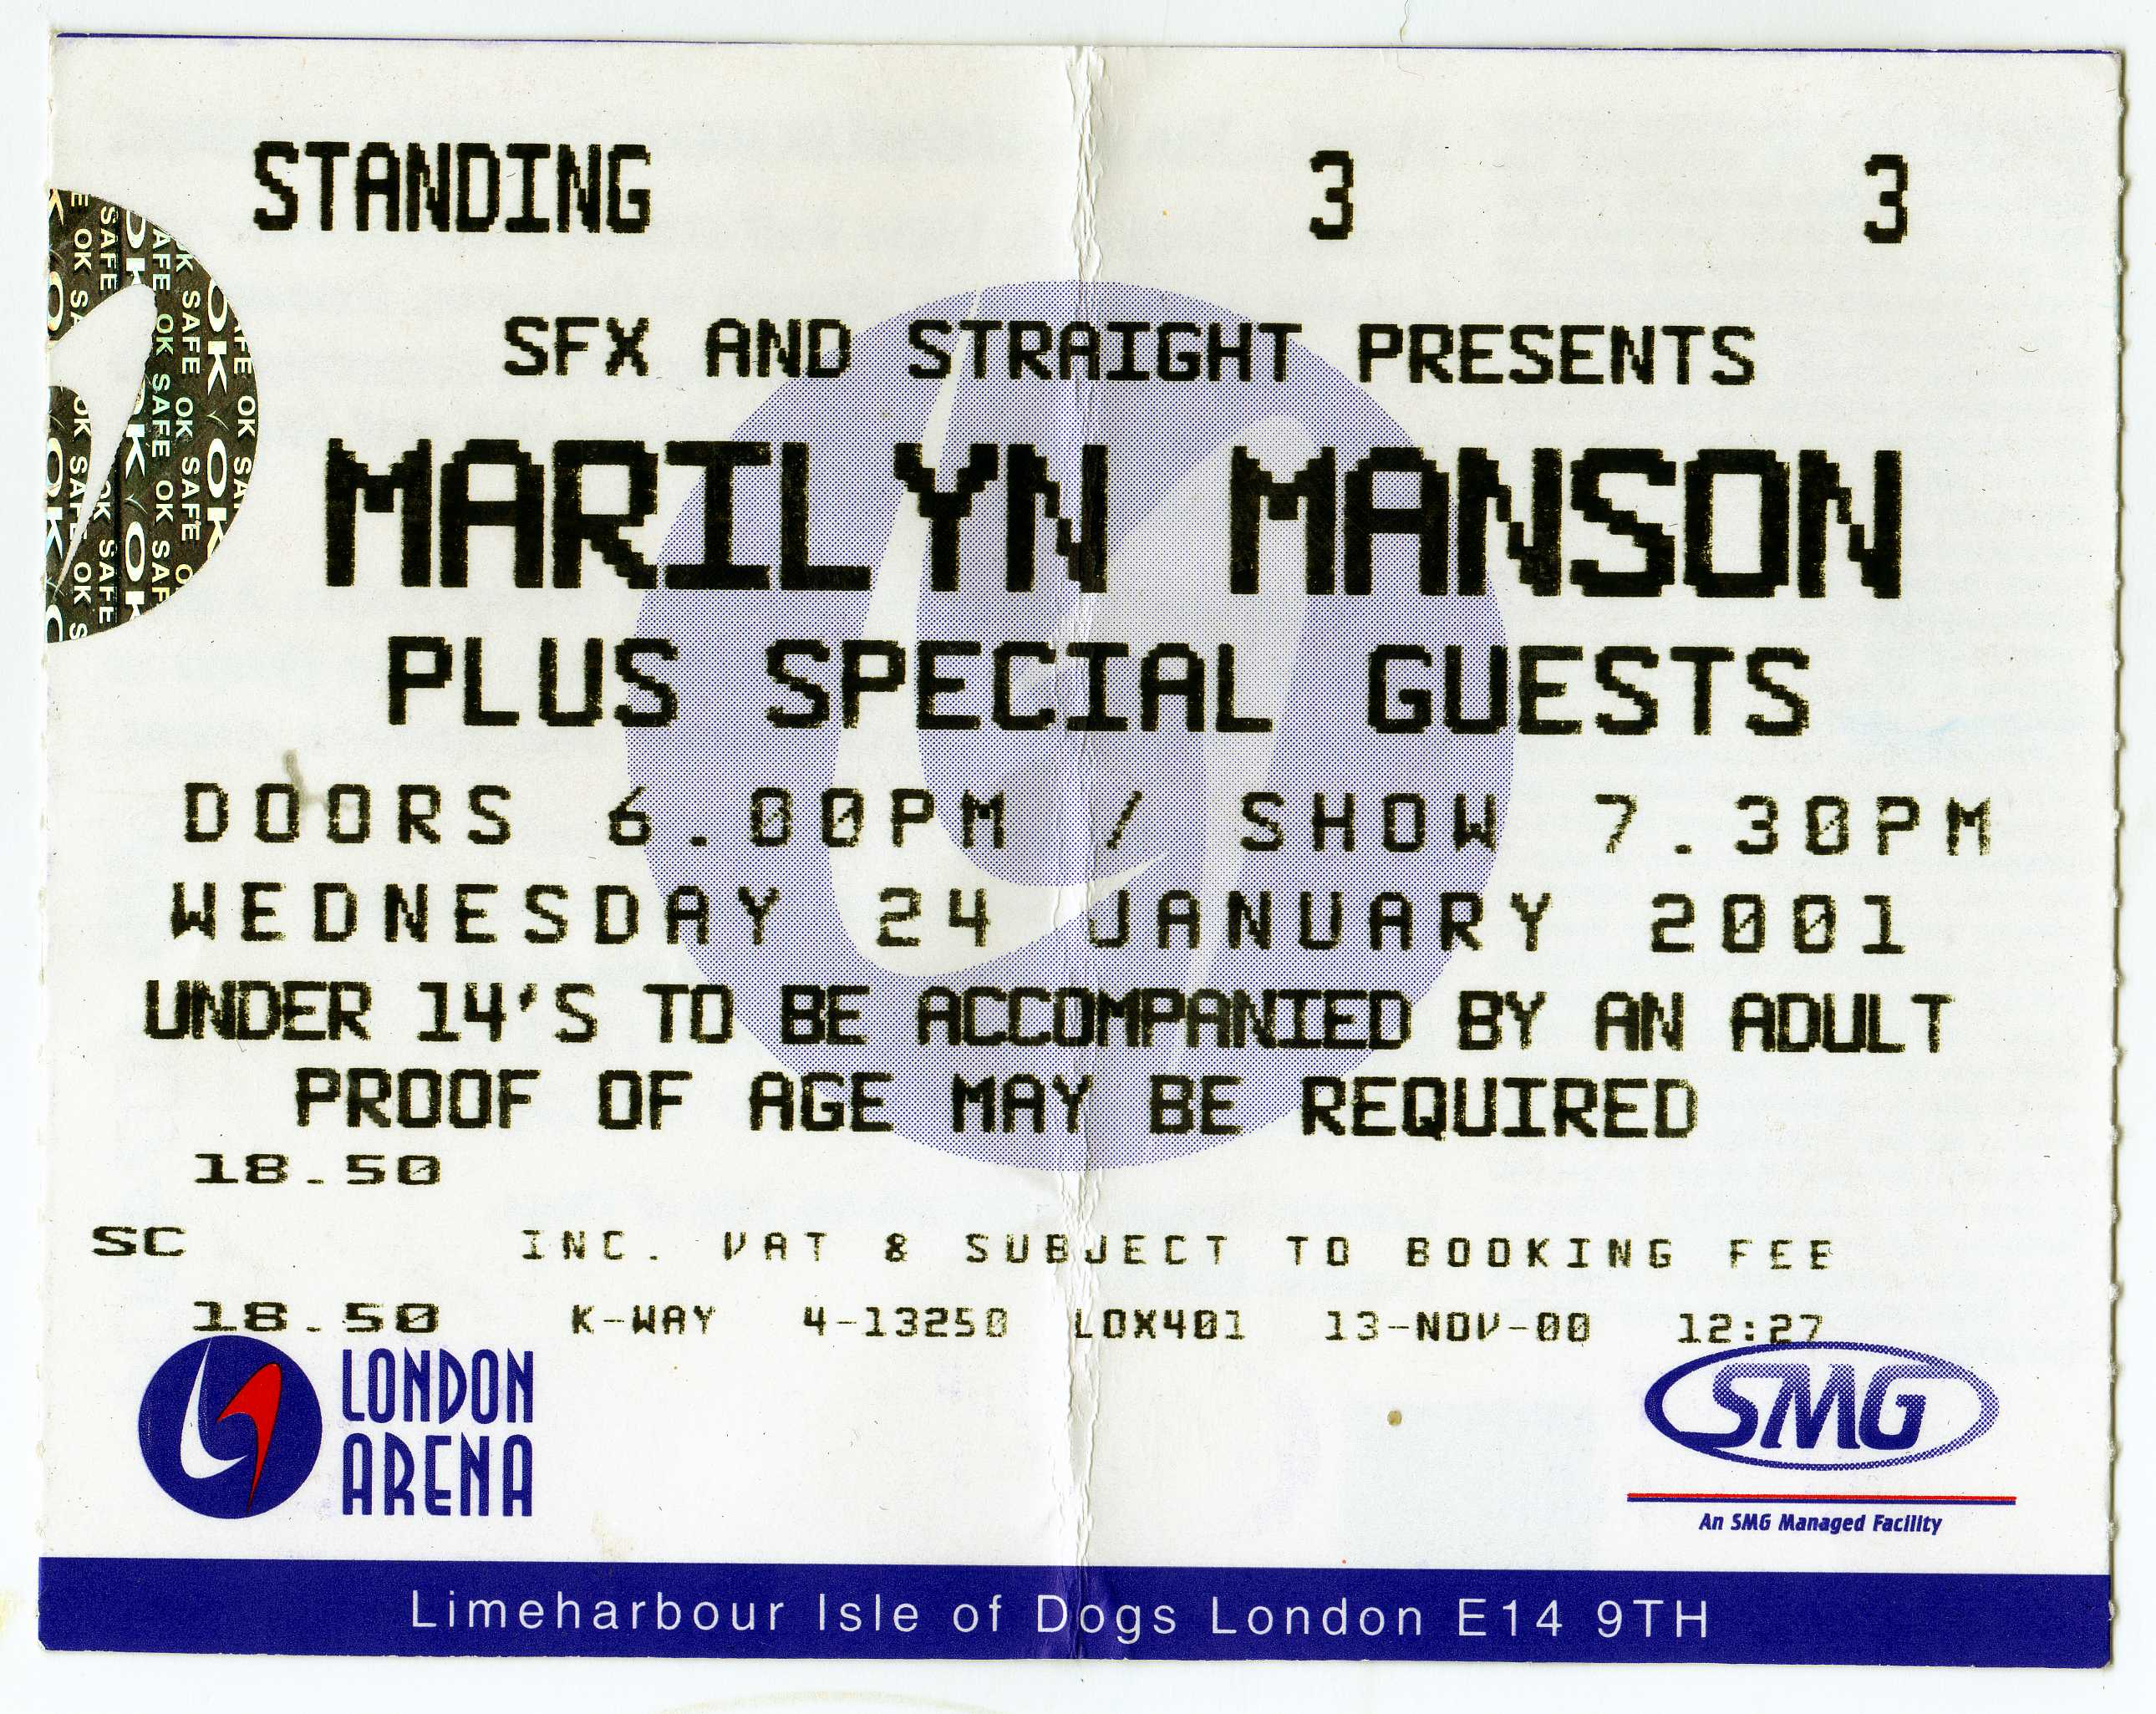 January 24, 2001 performance at Docklands Arena in London, England.